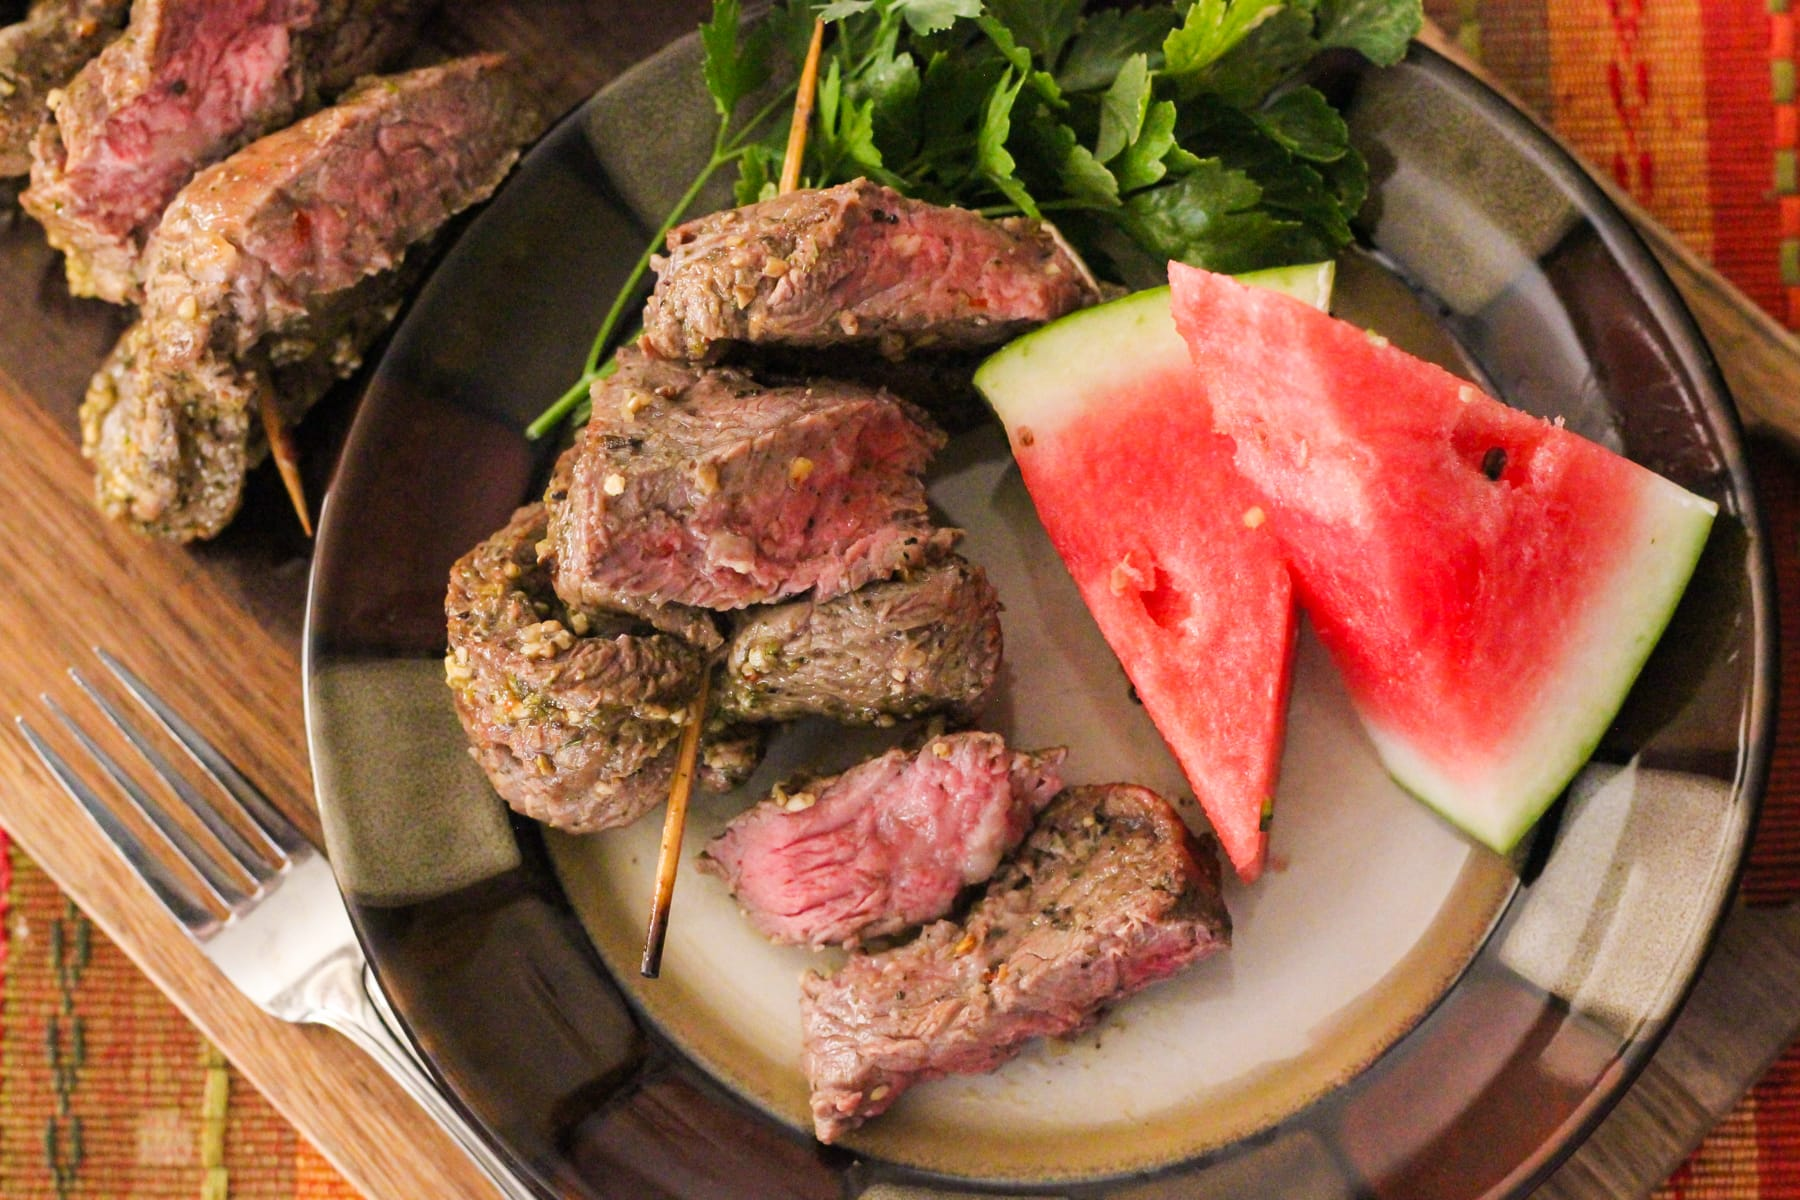 steak on a plate with watermelon slices.